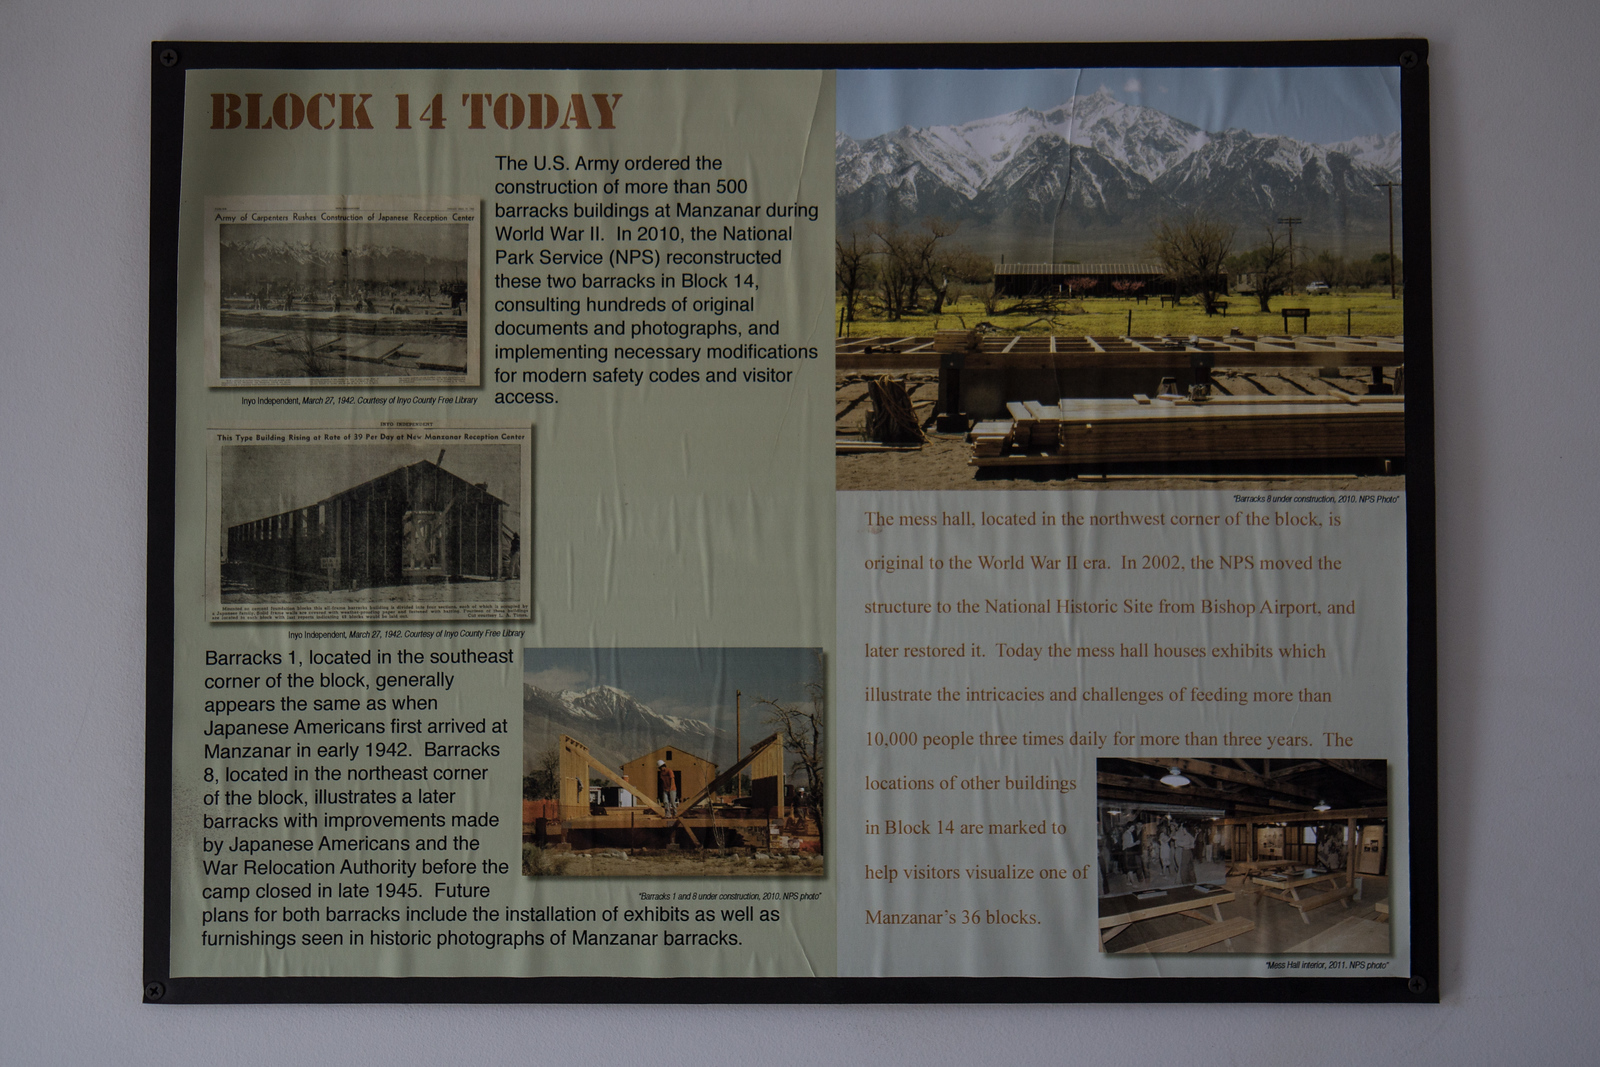 Manzanar barrack 14 today